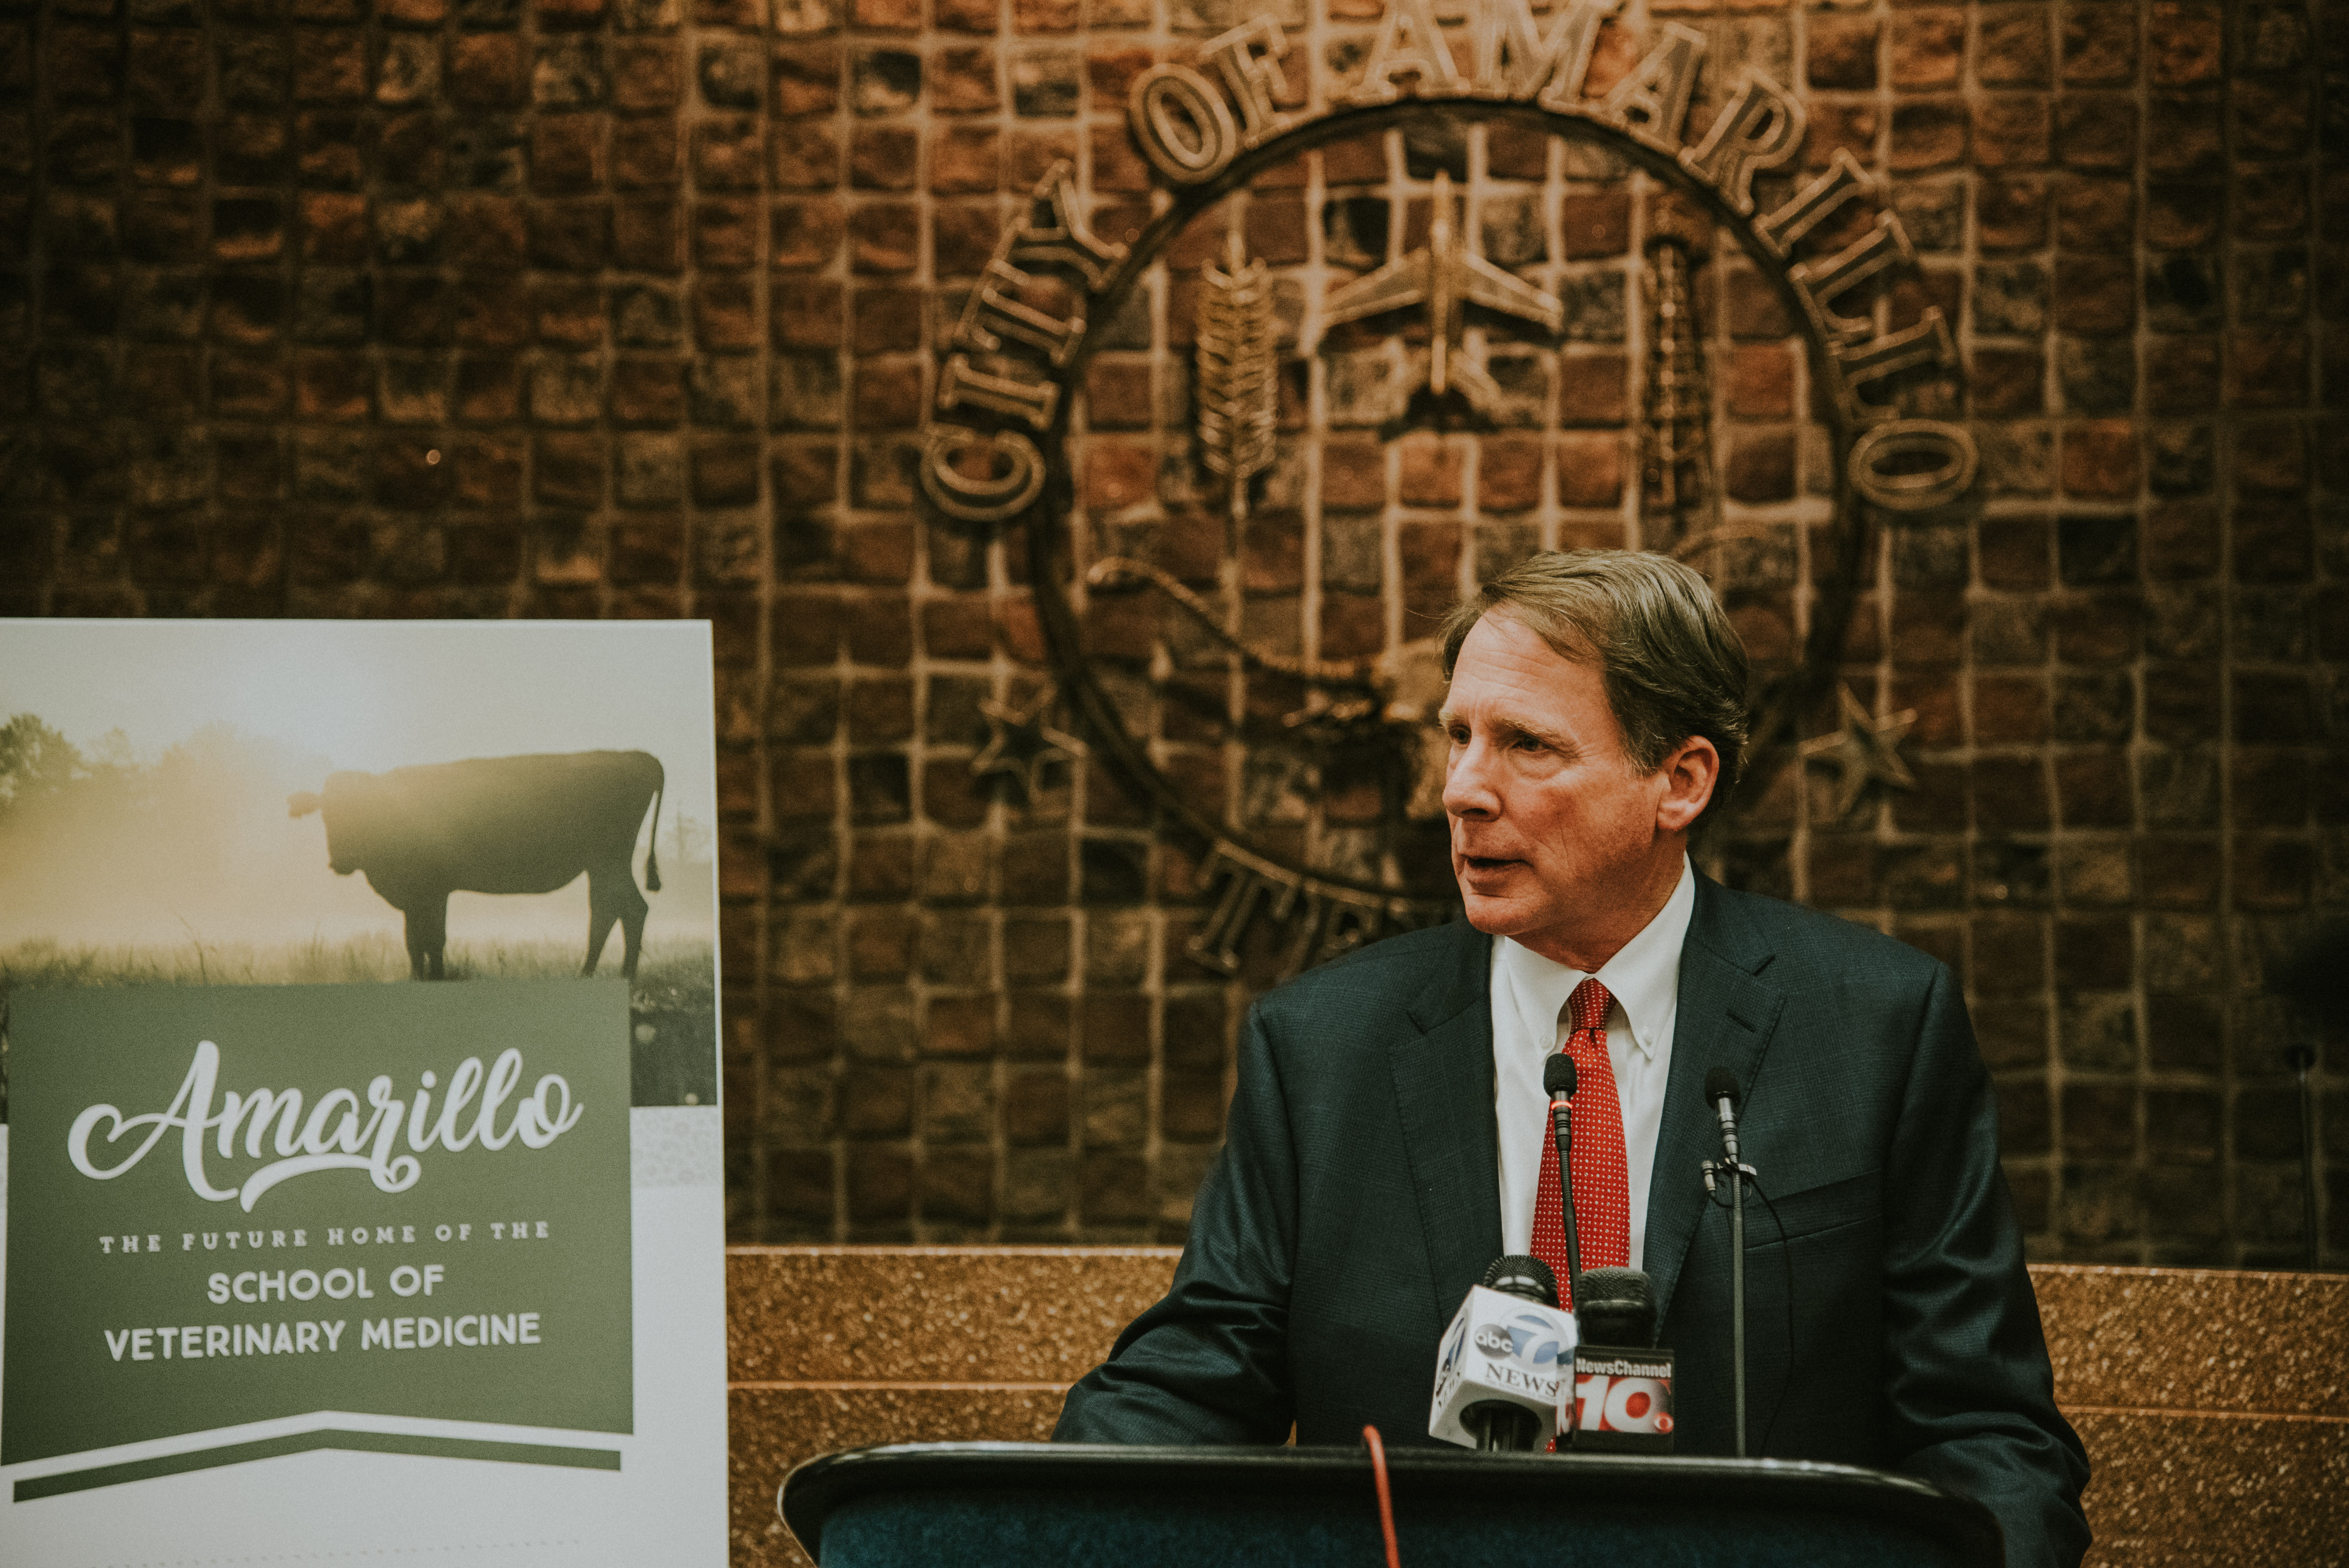 Amarillo To Invest $69M in Construction of Texas Tech